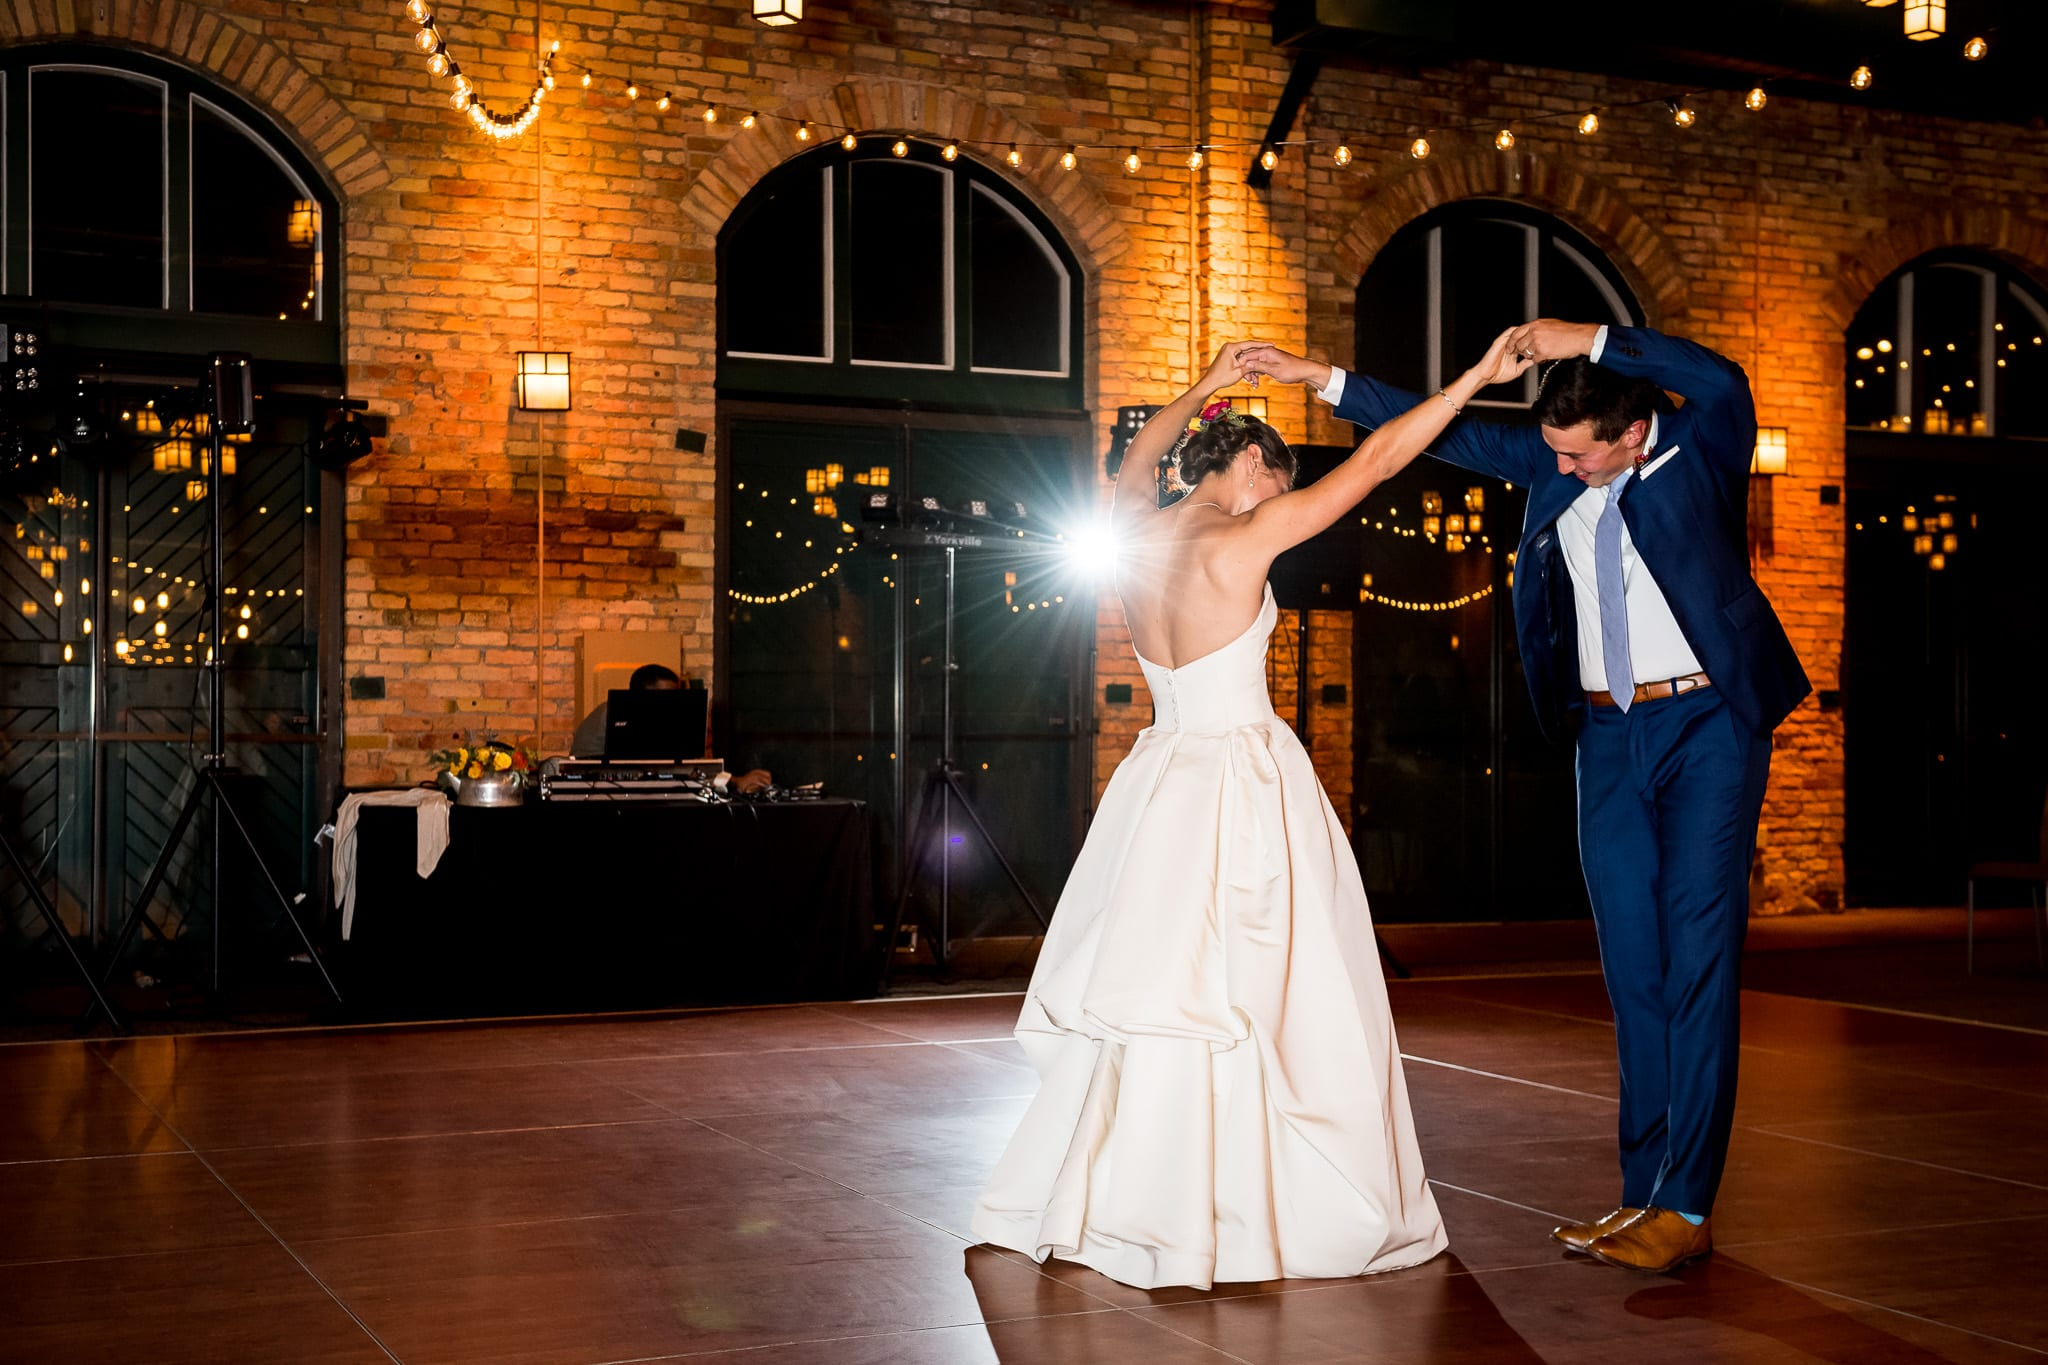 Fancy dance moves from the bride and groom